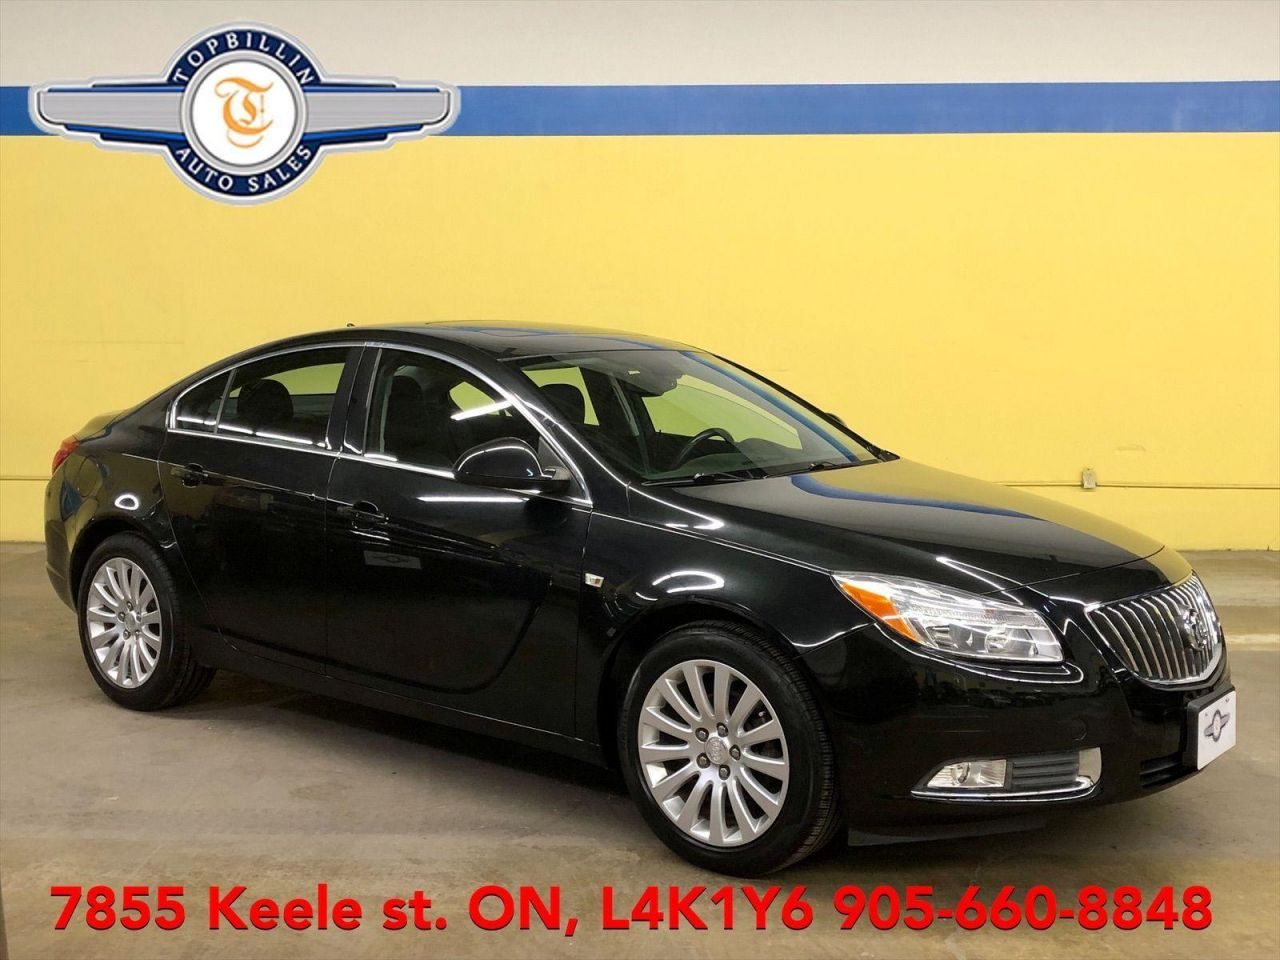 2011 Buick Regal CXL Only 73K km, Leather, Sunroof & more